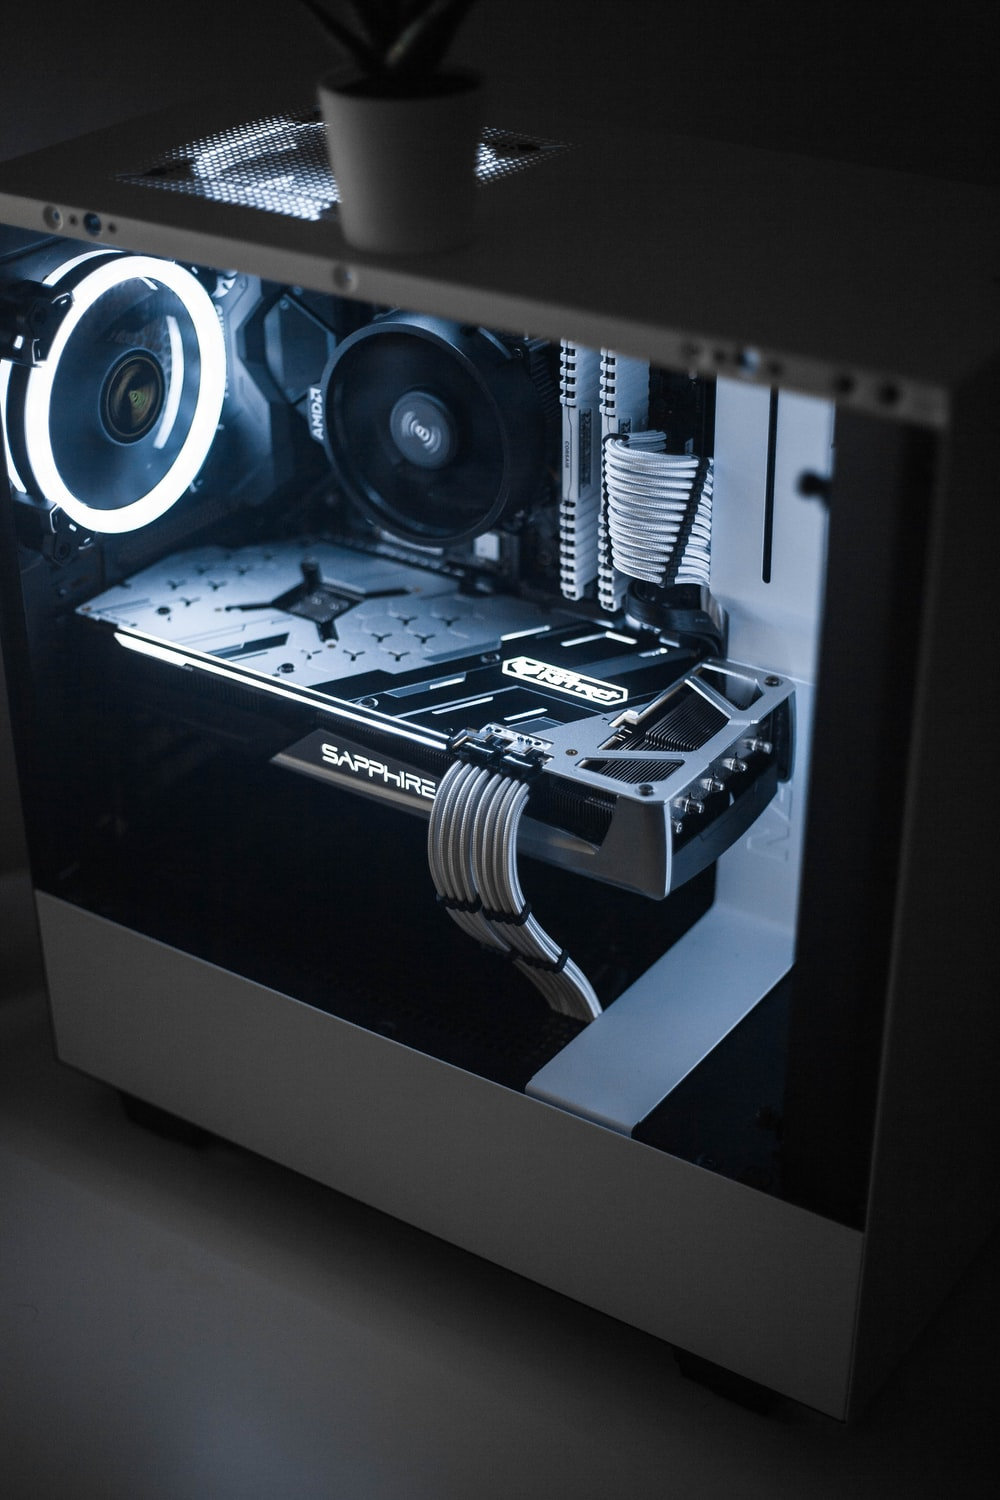 white Sapphire computer motherboard